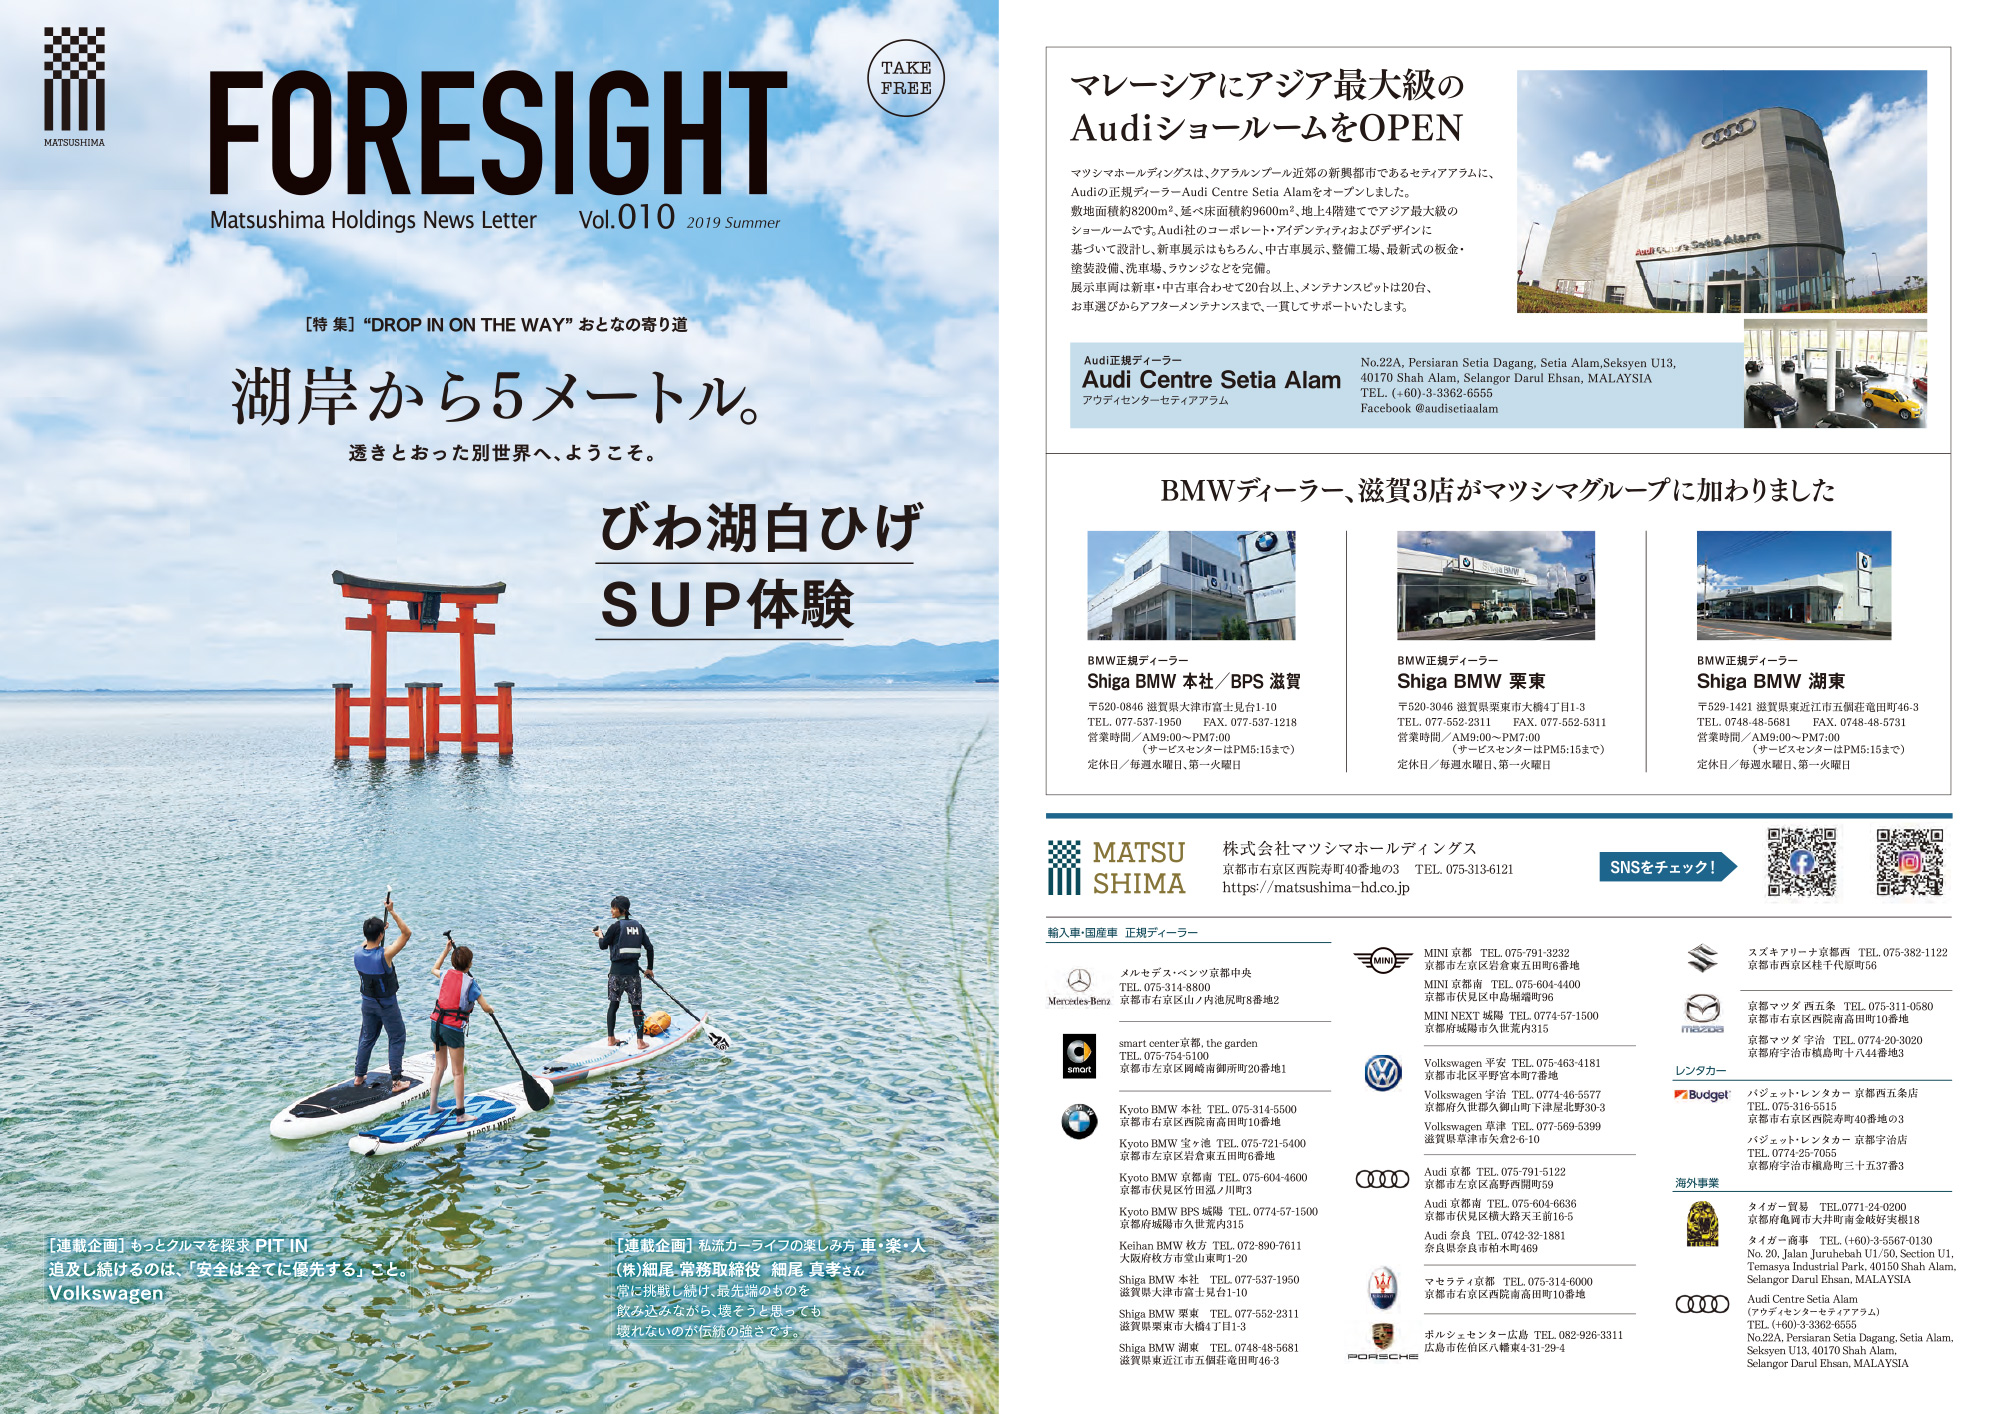 FORESIGHT vol.10 P1&P8